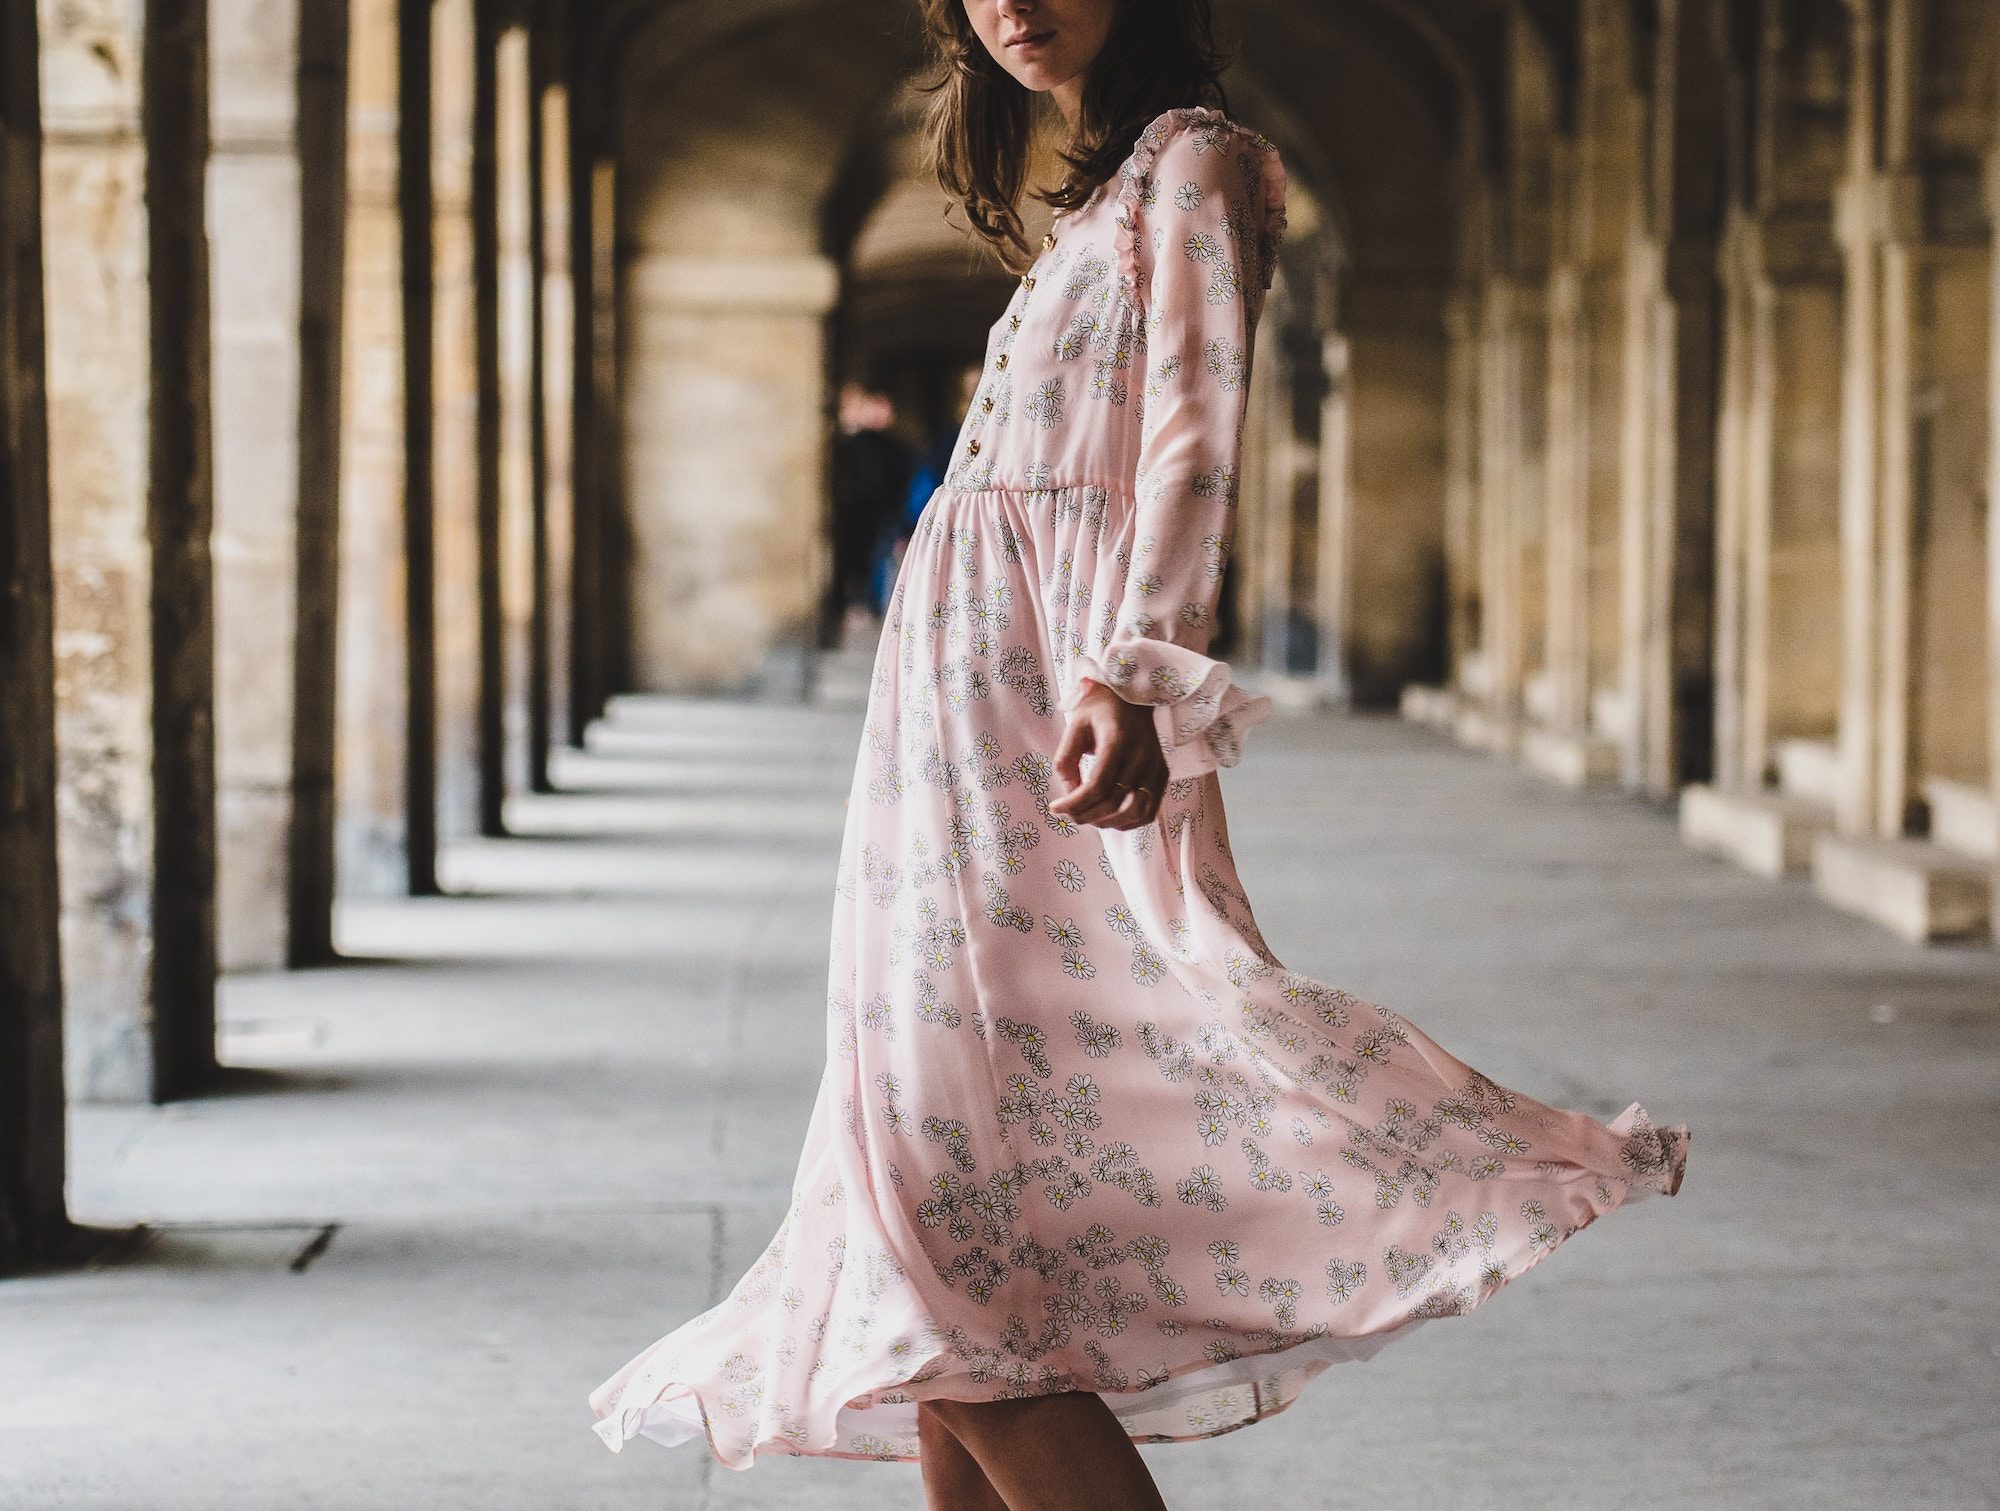 Luxury shopping in Paris made easy with these tips, including how to find stylish bohemian dresses like this one on a woman standing under the arches of the Palais Royal Gardens.